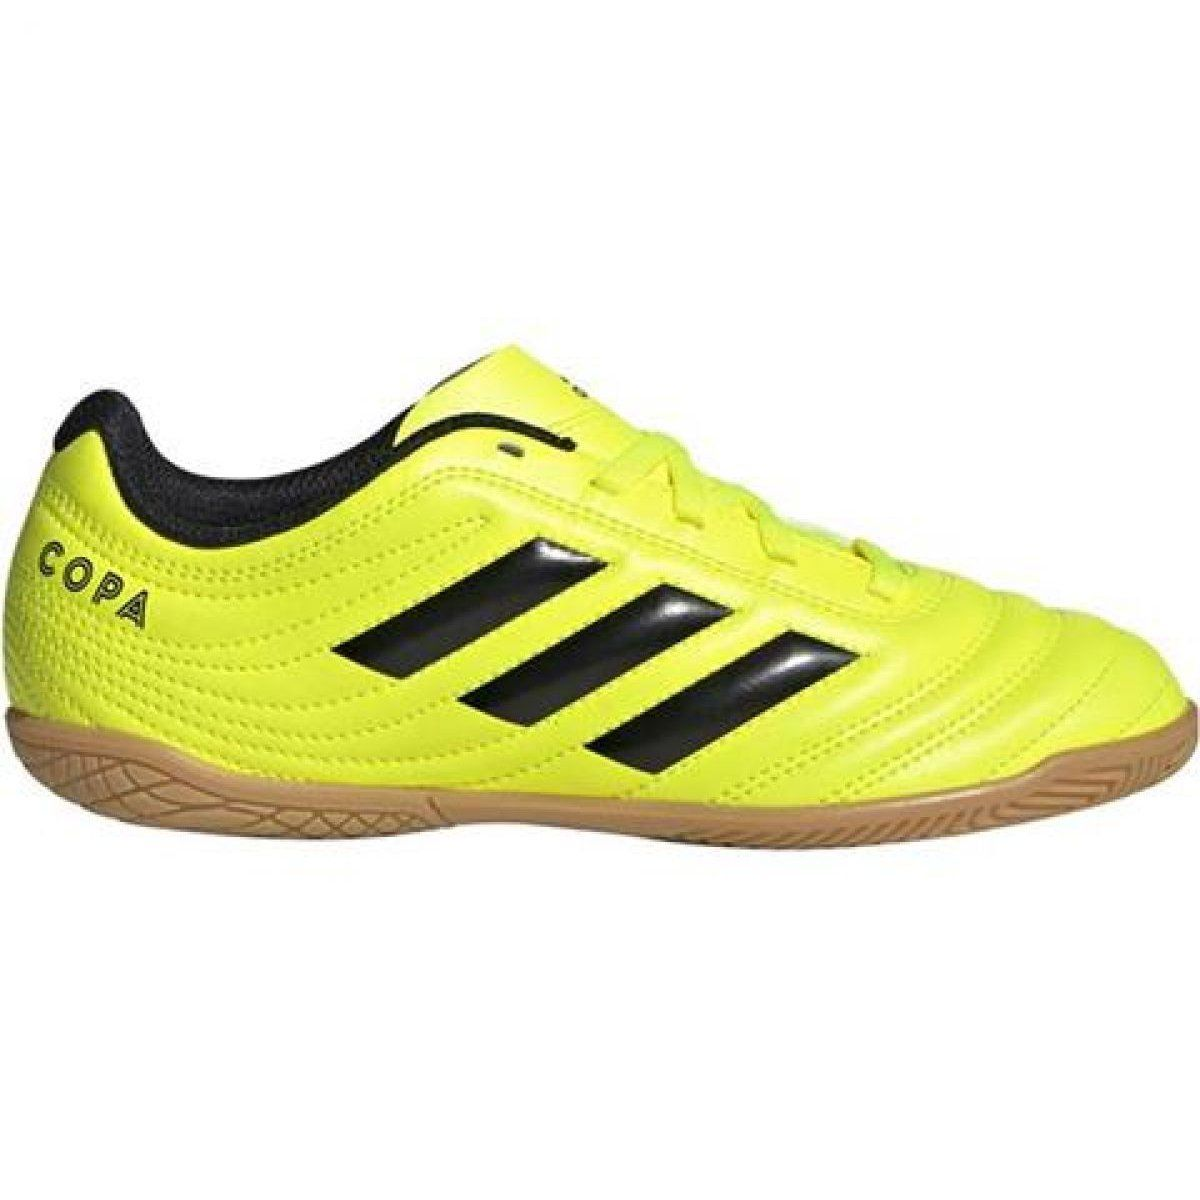 Buty Halowe Adidas Copa 19 4 In Jr F35451 Zolte Zolte Boys Football Boots Shoes Sneakers Adidas Adidas